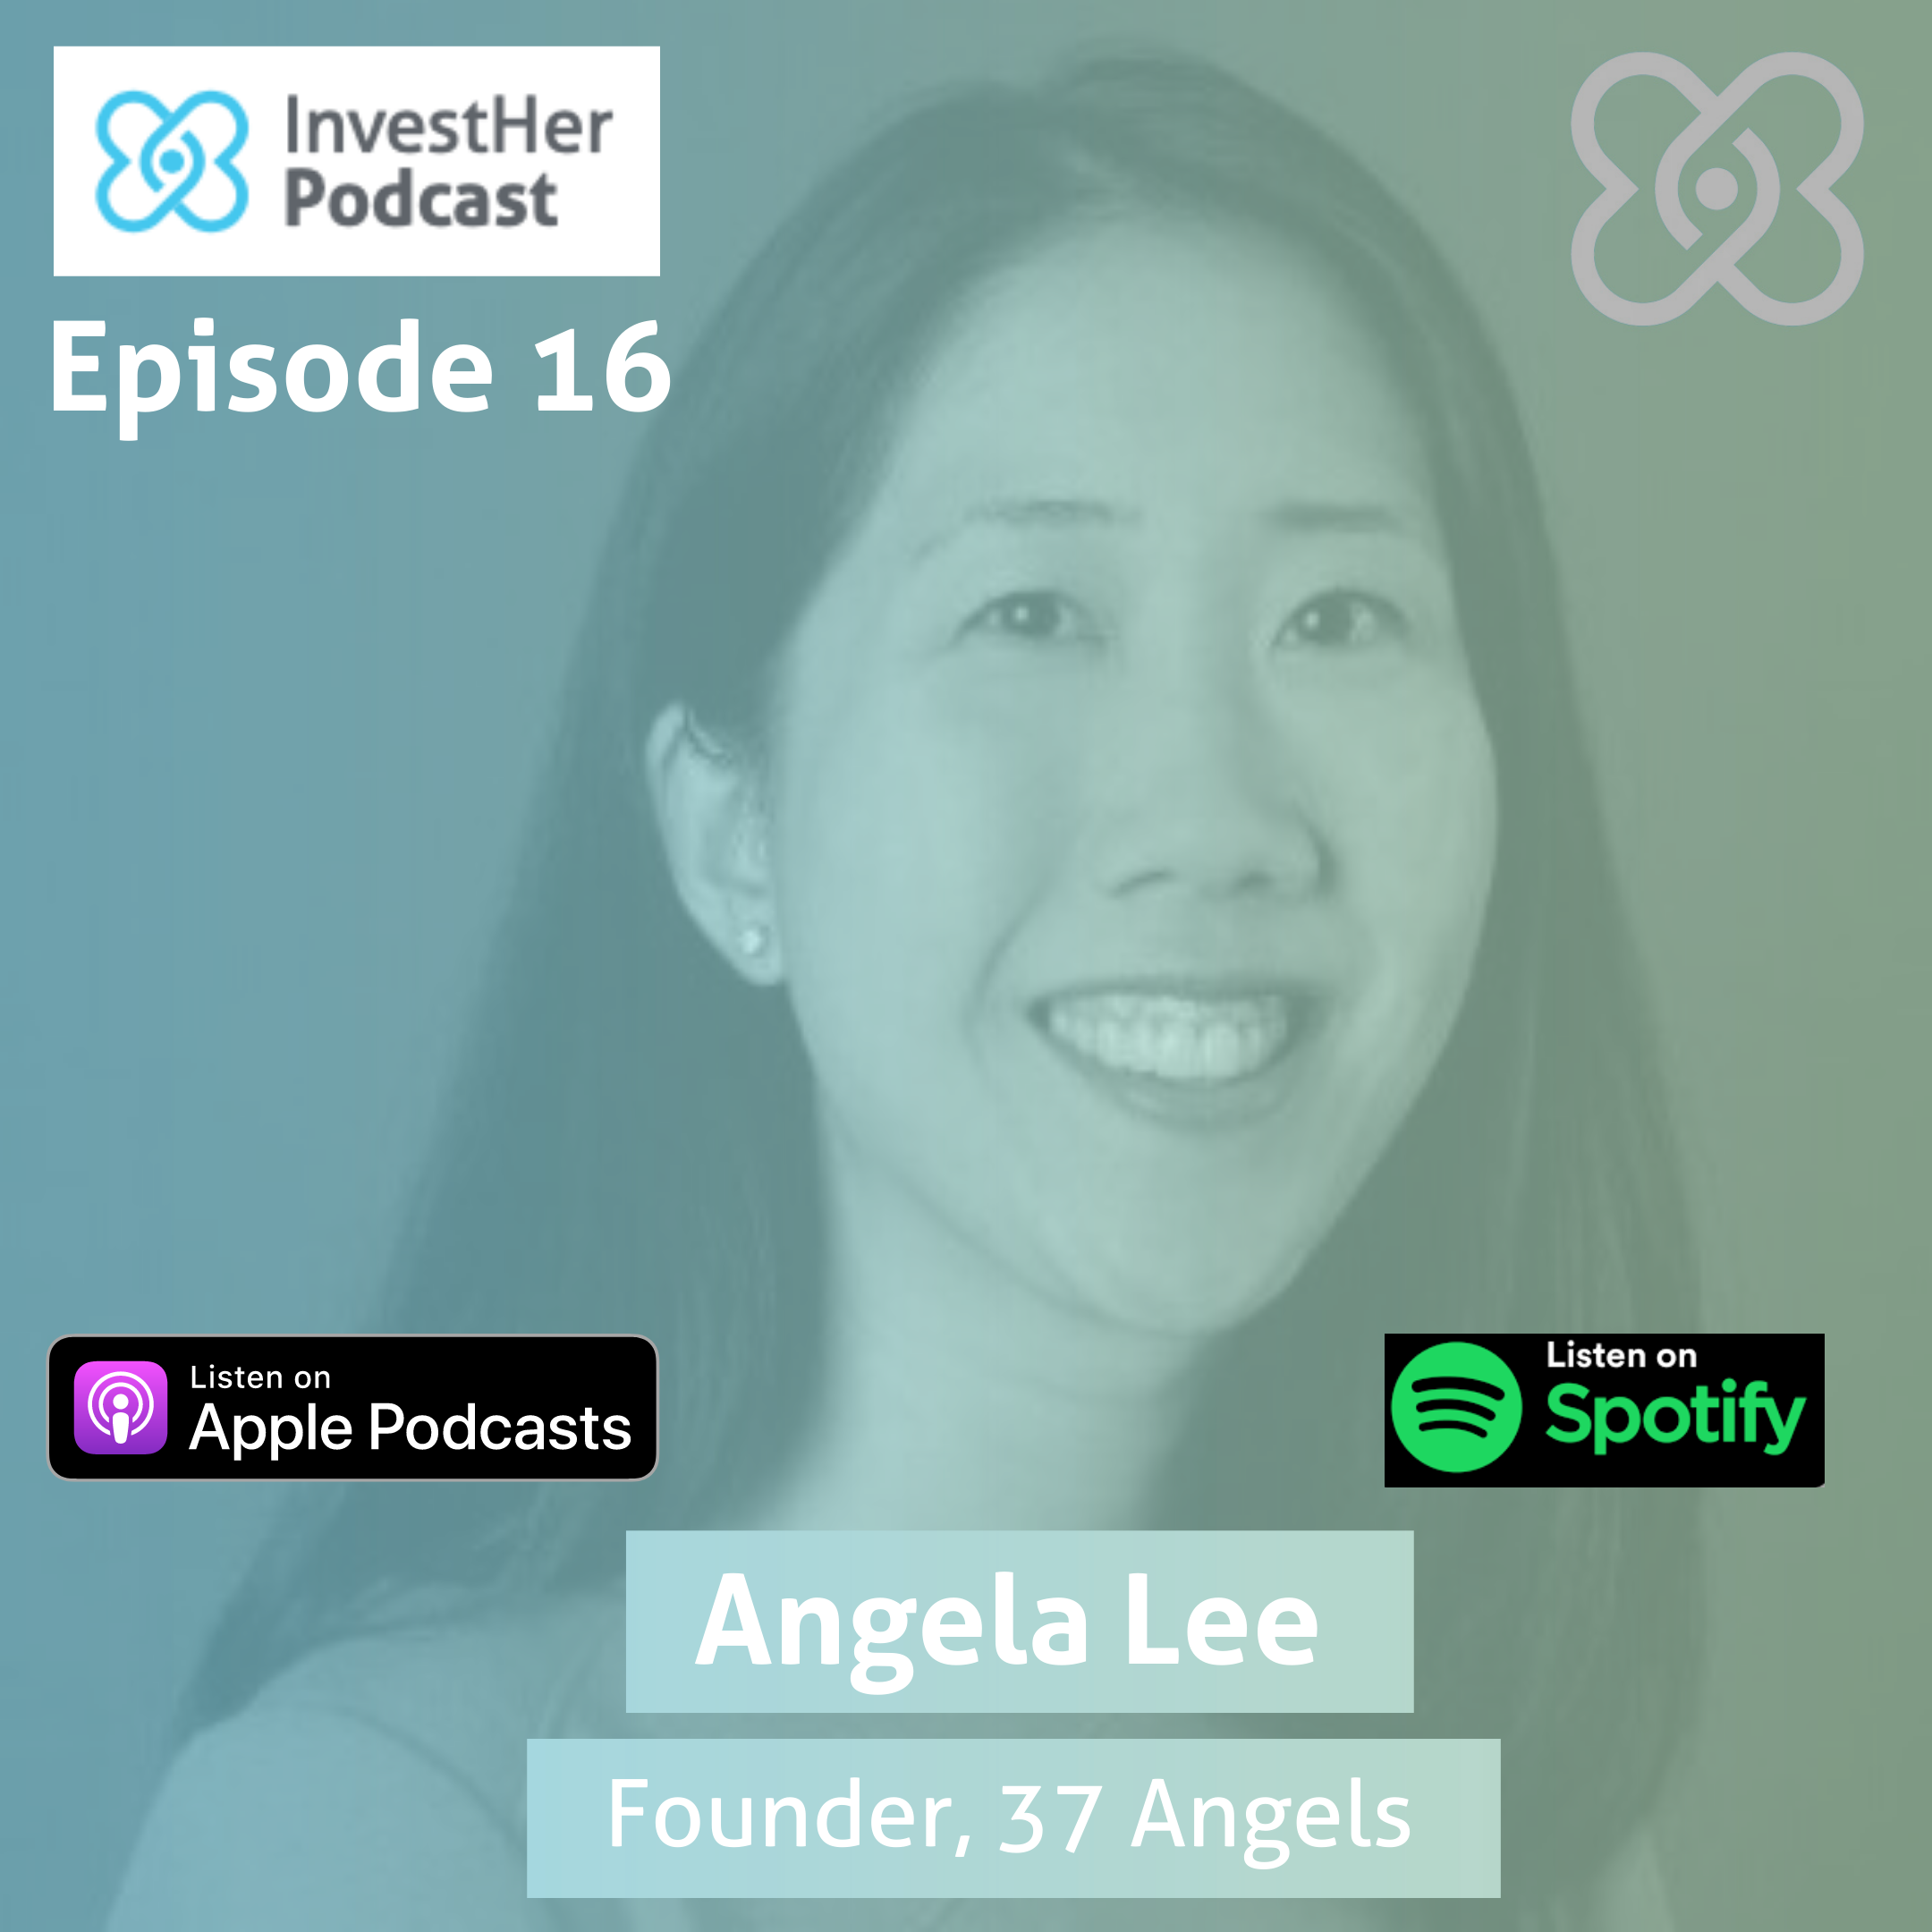 Ask an Angel - Fundraising Advice for Female Founders with Angela Lee - Founder of 37 Angels